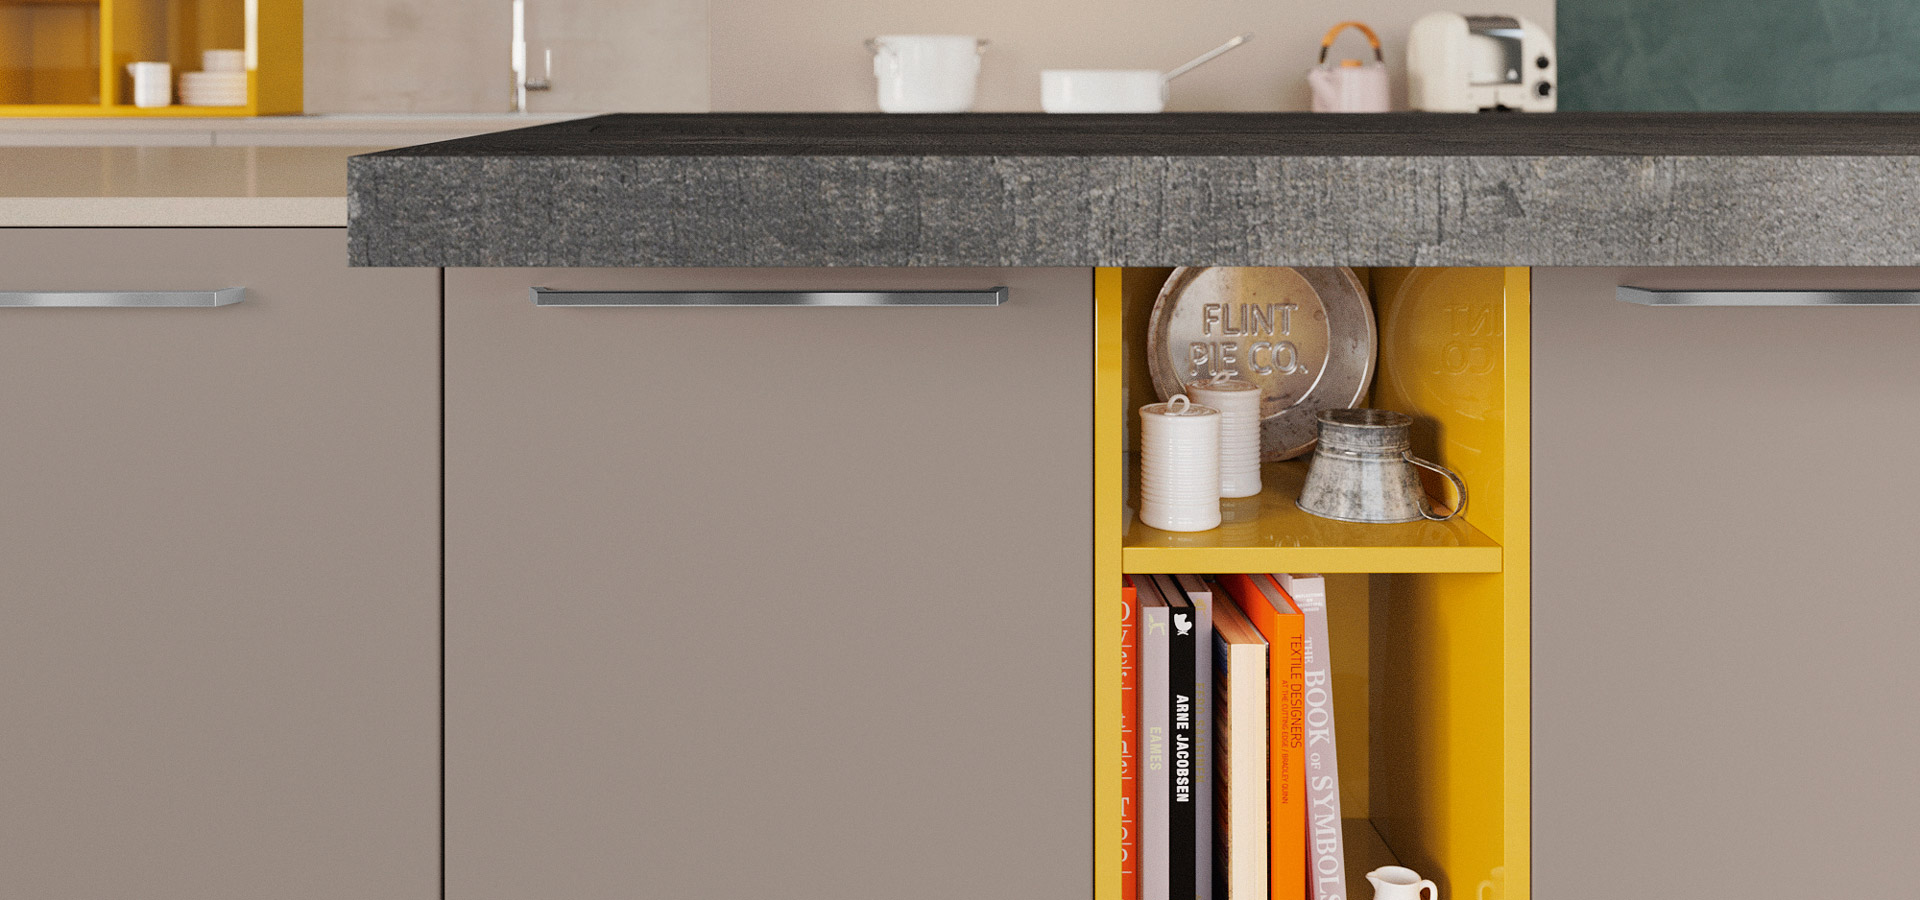 combine matte finishes, woodgrain, gloss accents and textured worksurfaces for chic style